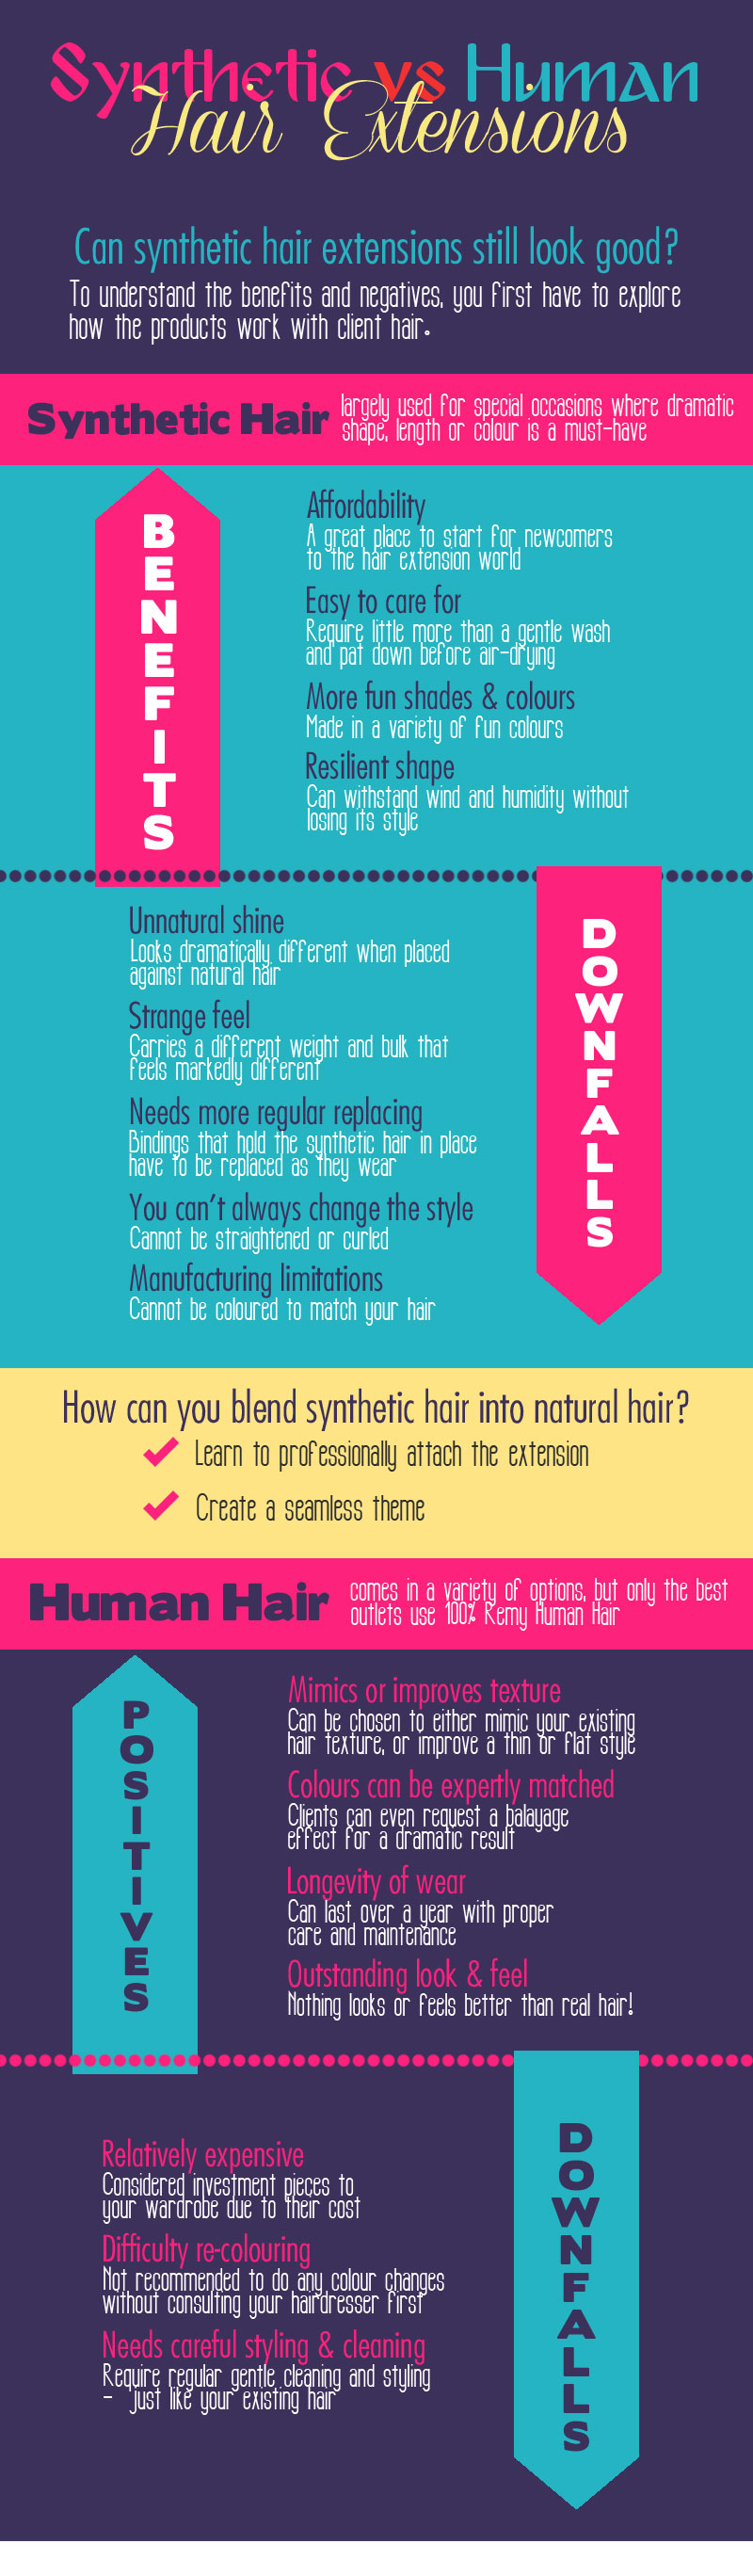 How to make synthetic hair extension looks good